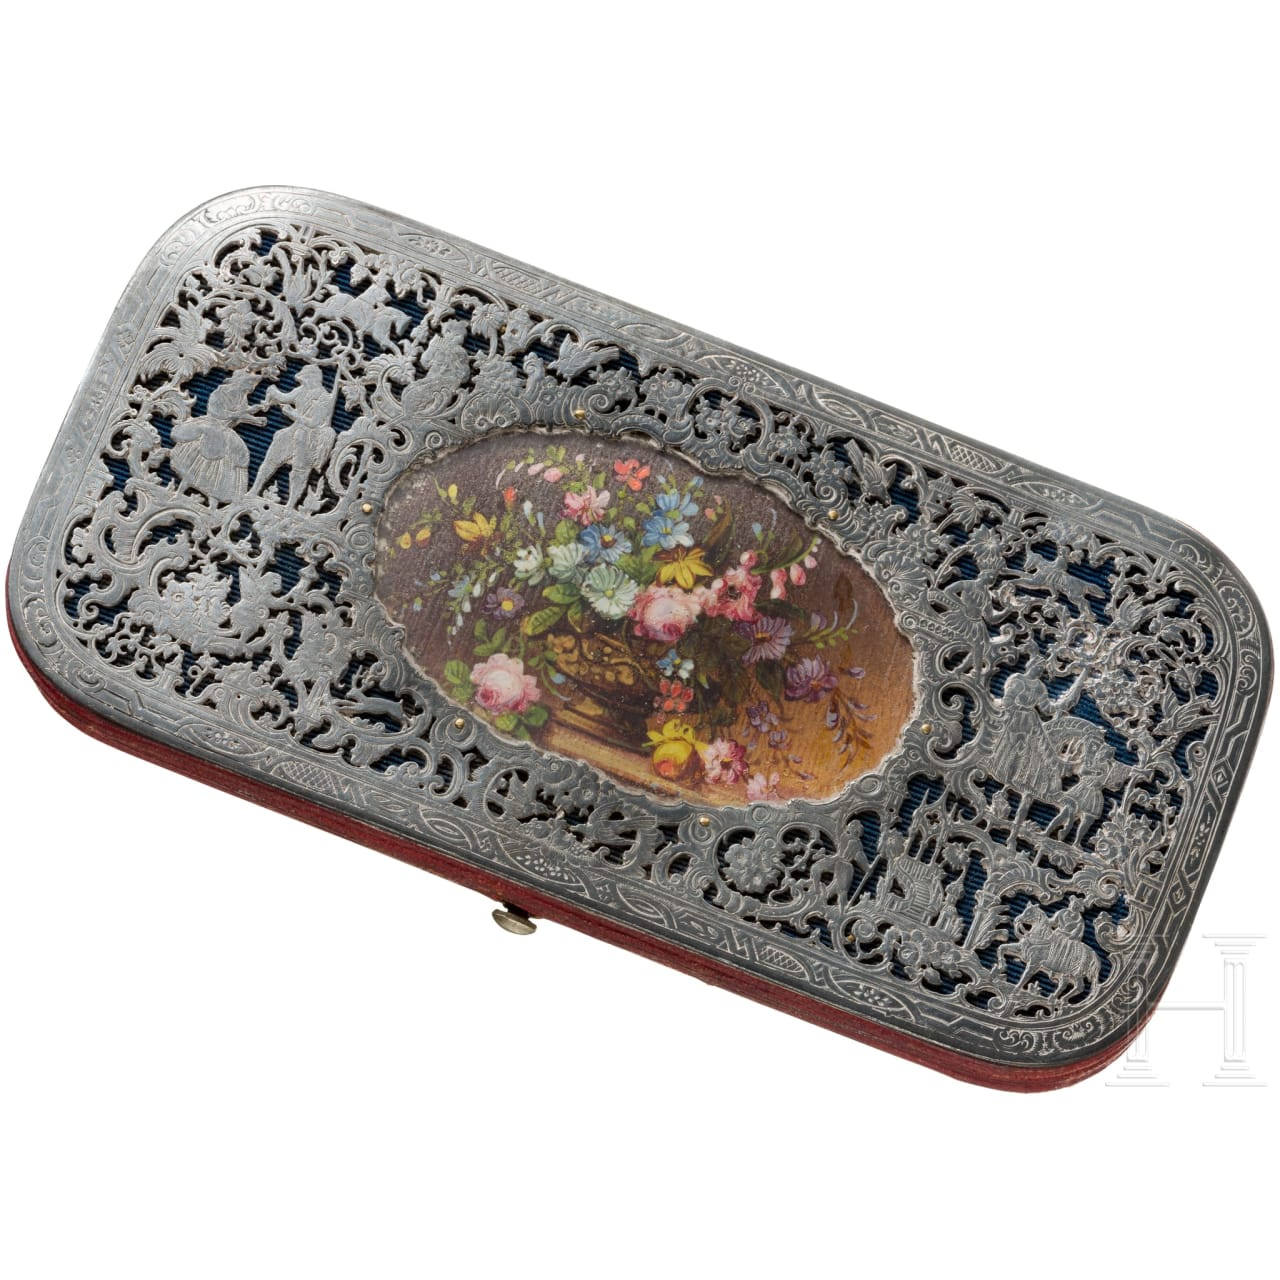 A South German silver-mounted spectacle case, circa 1860